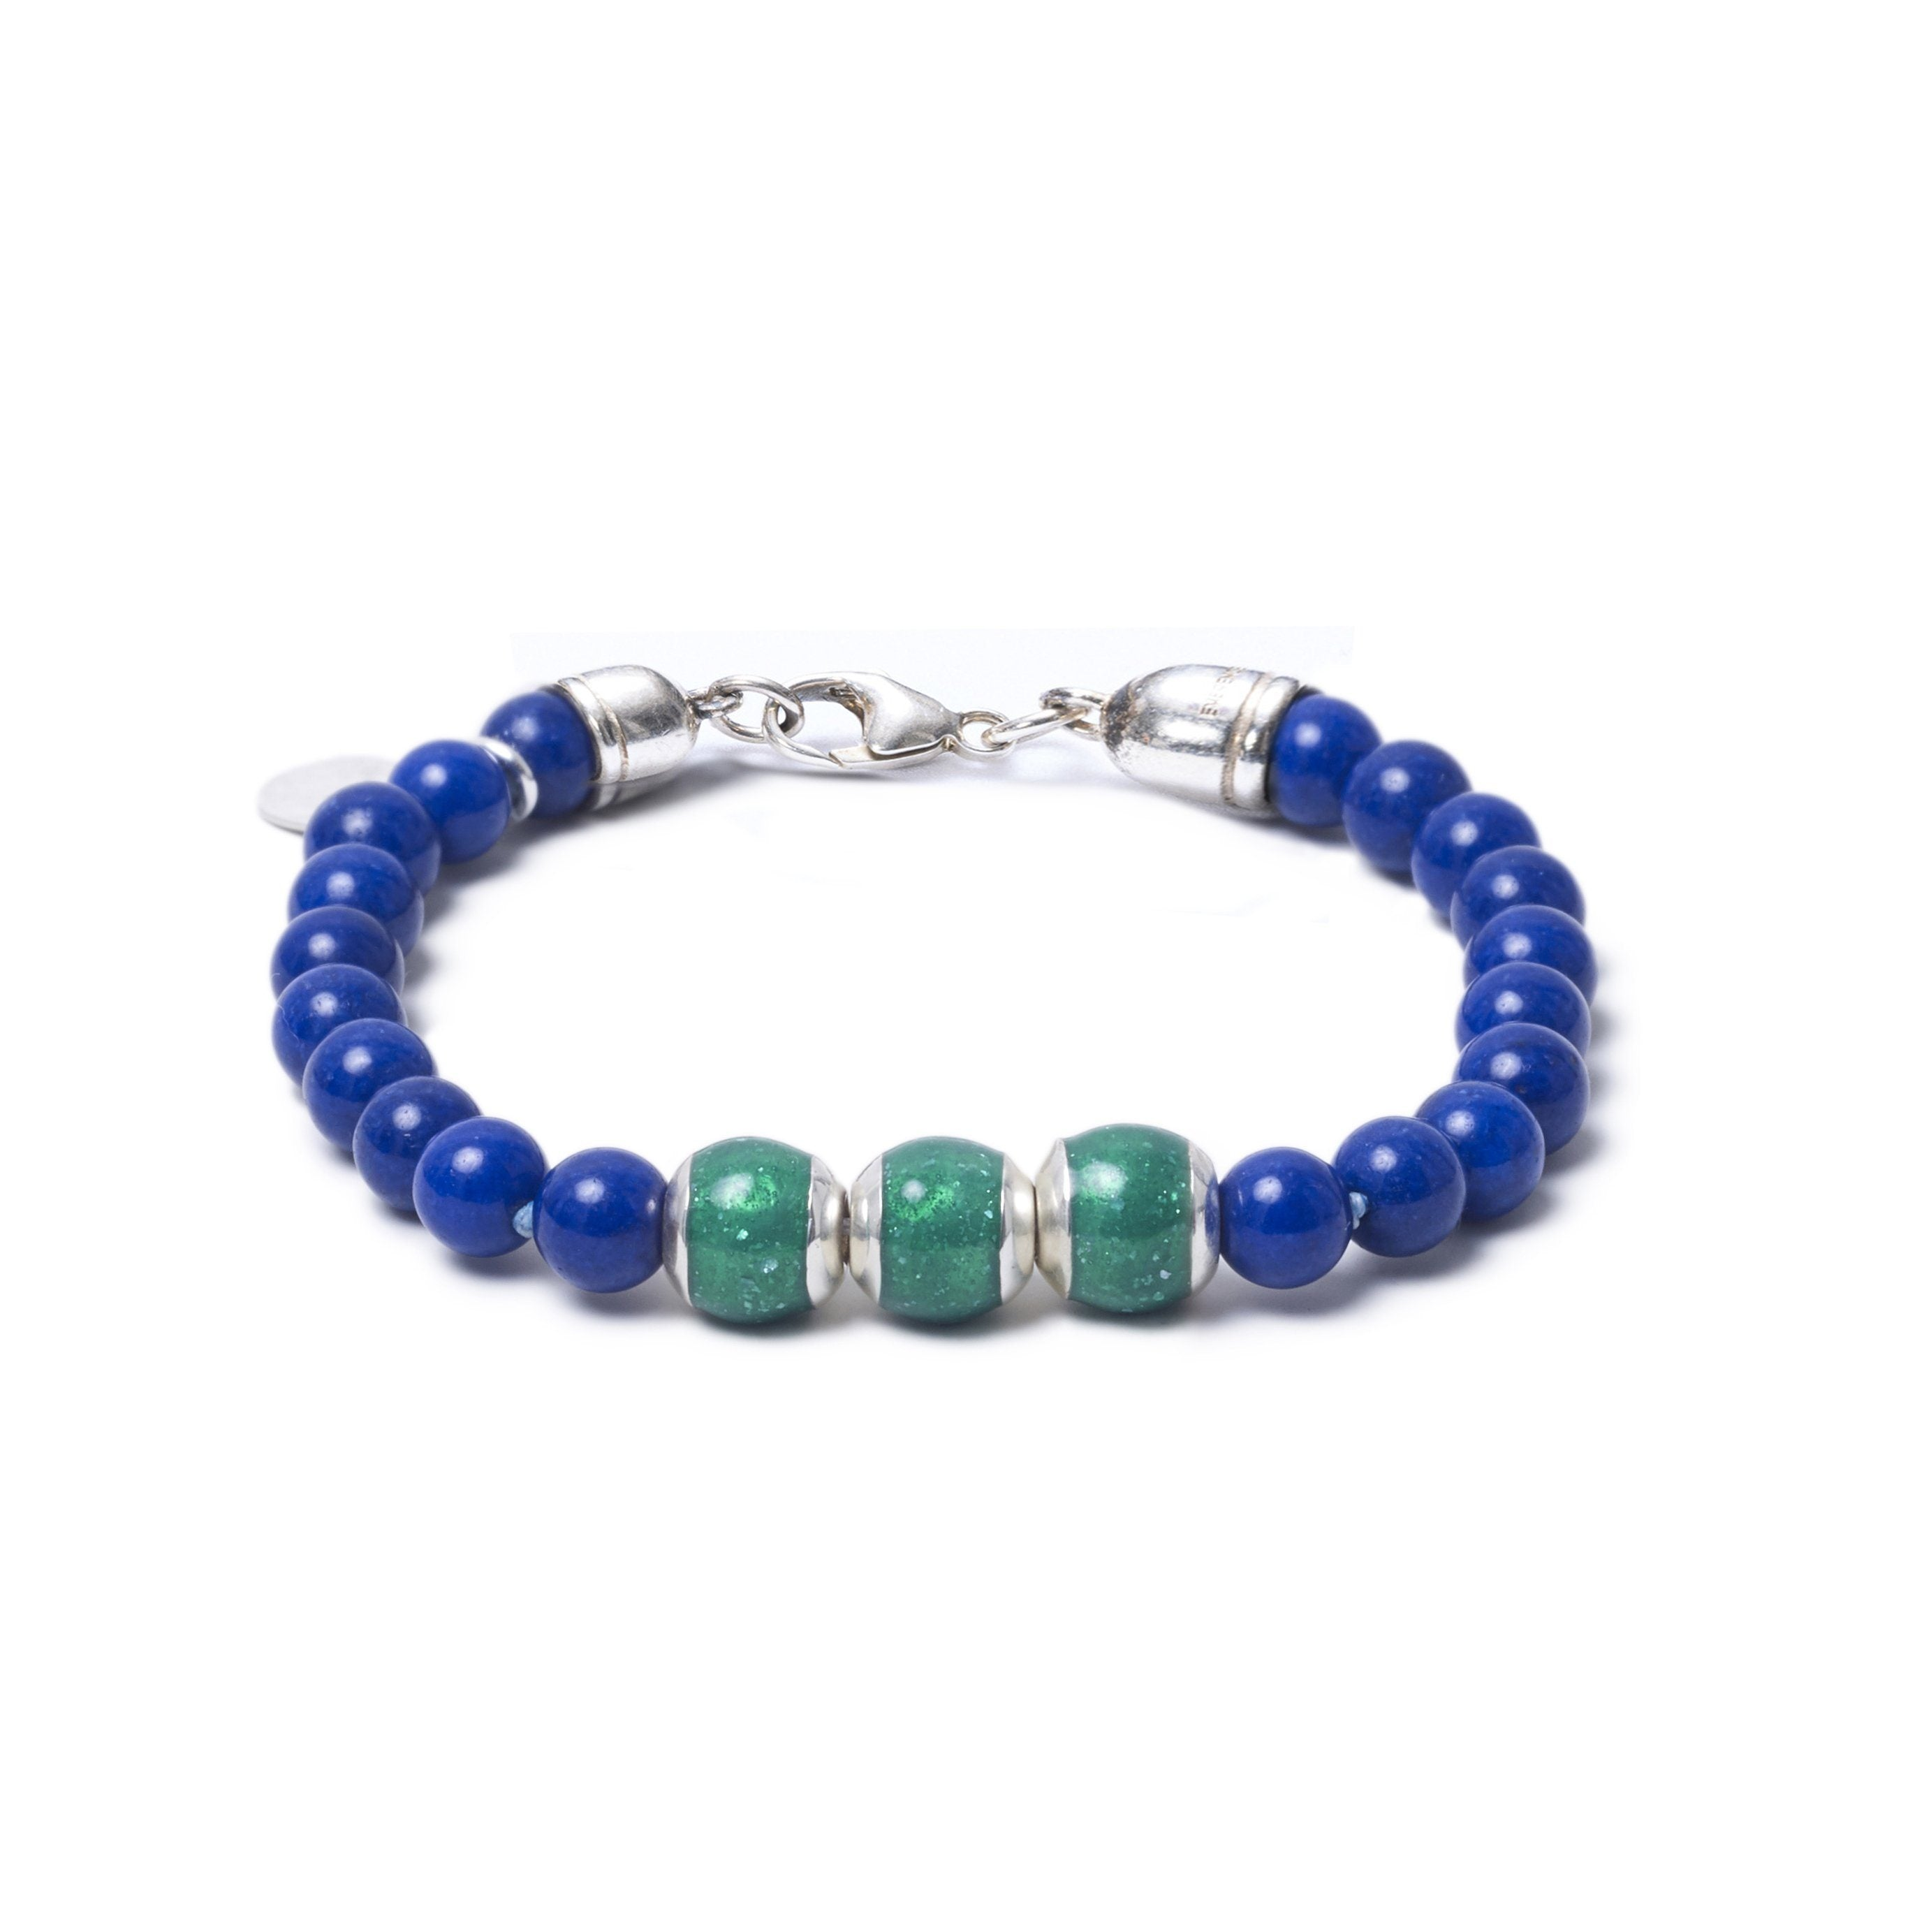 Lapis Lazuli, Three Everence Beads